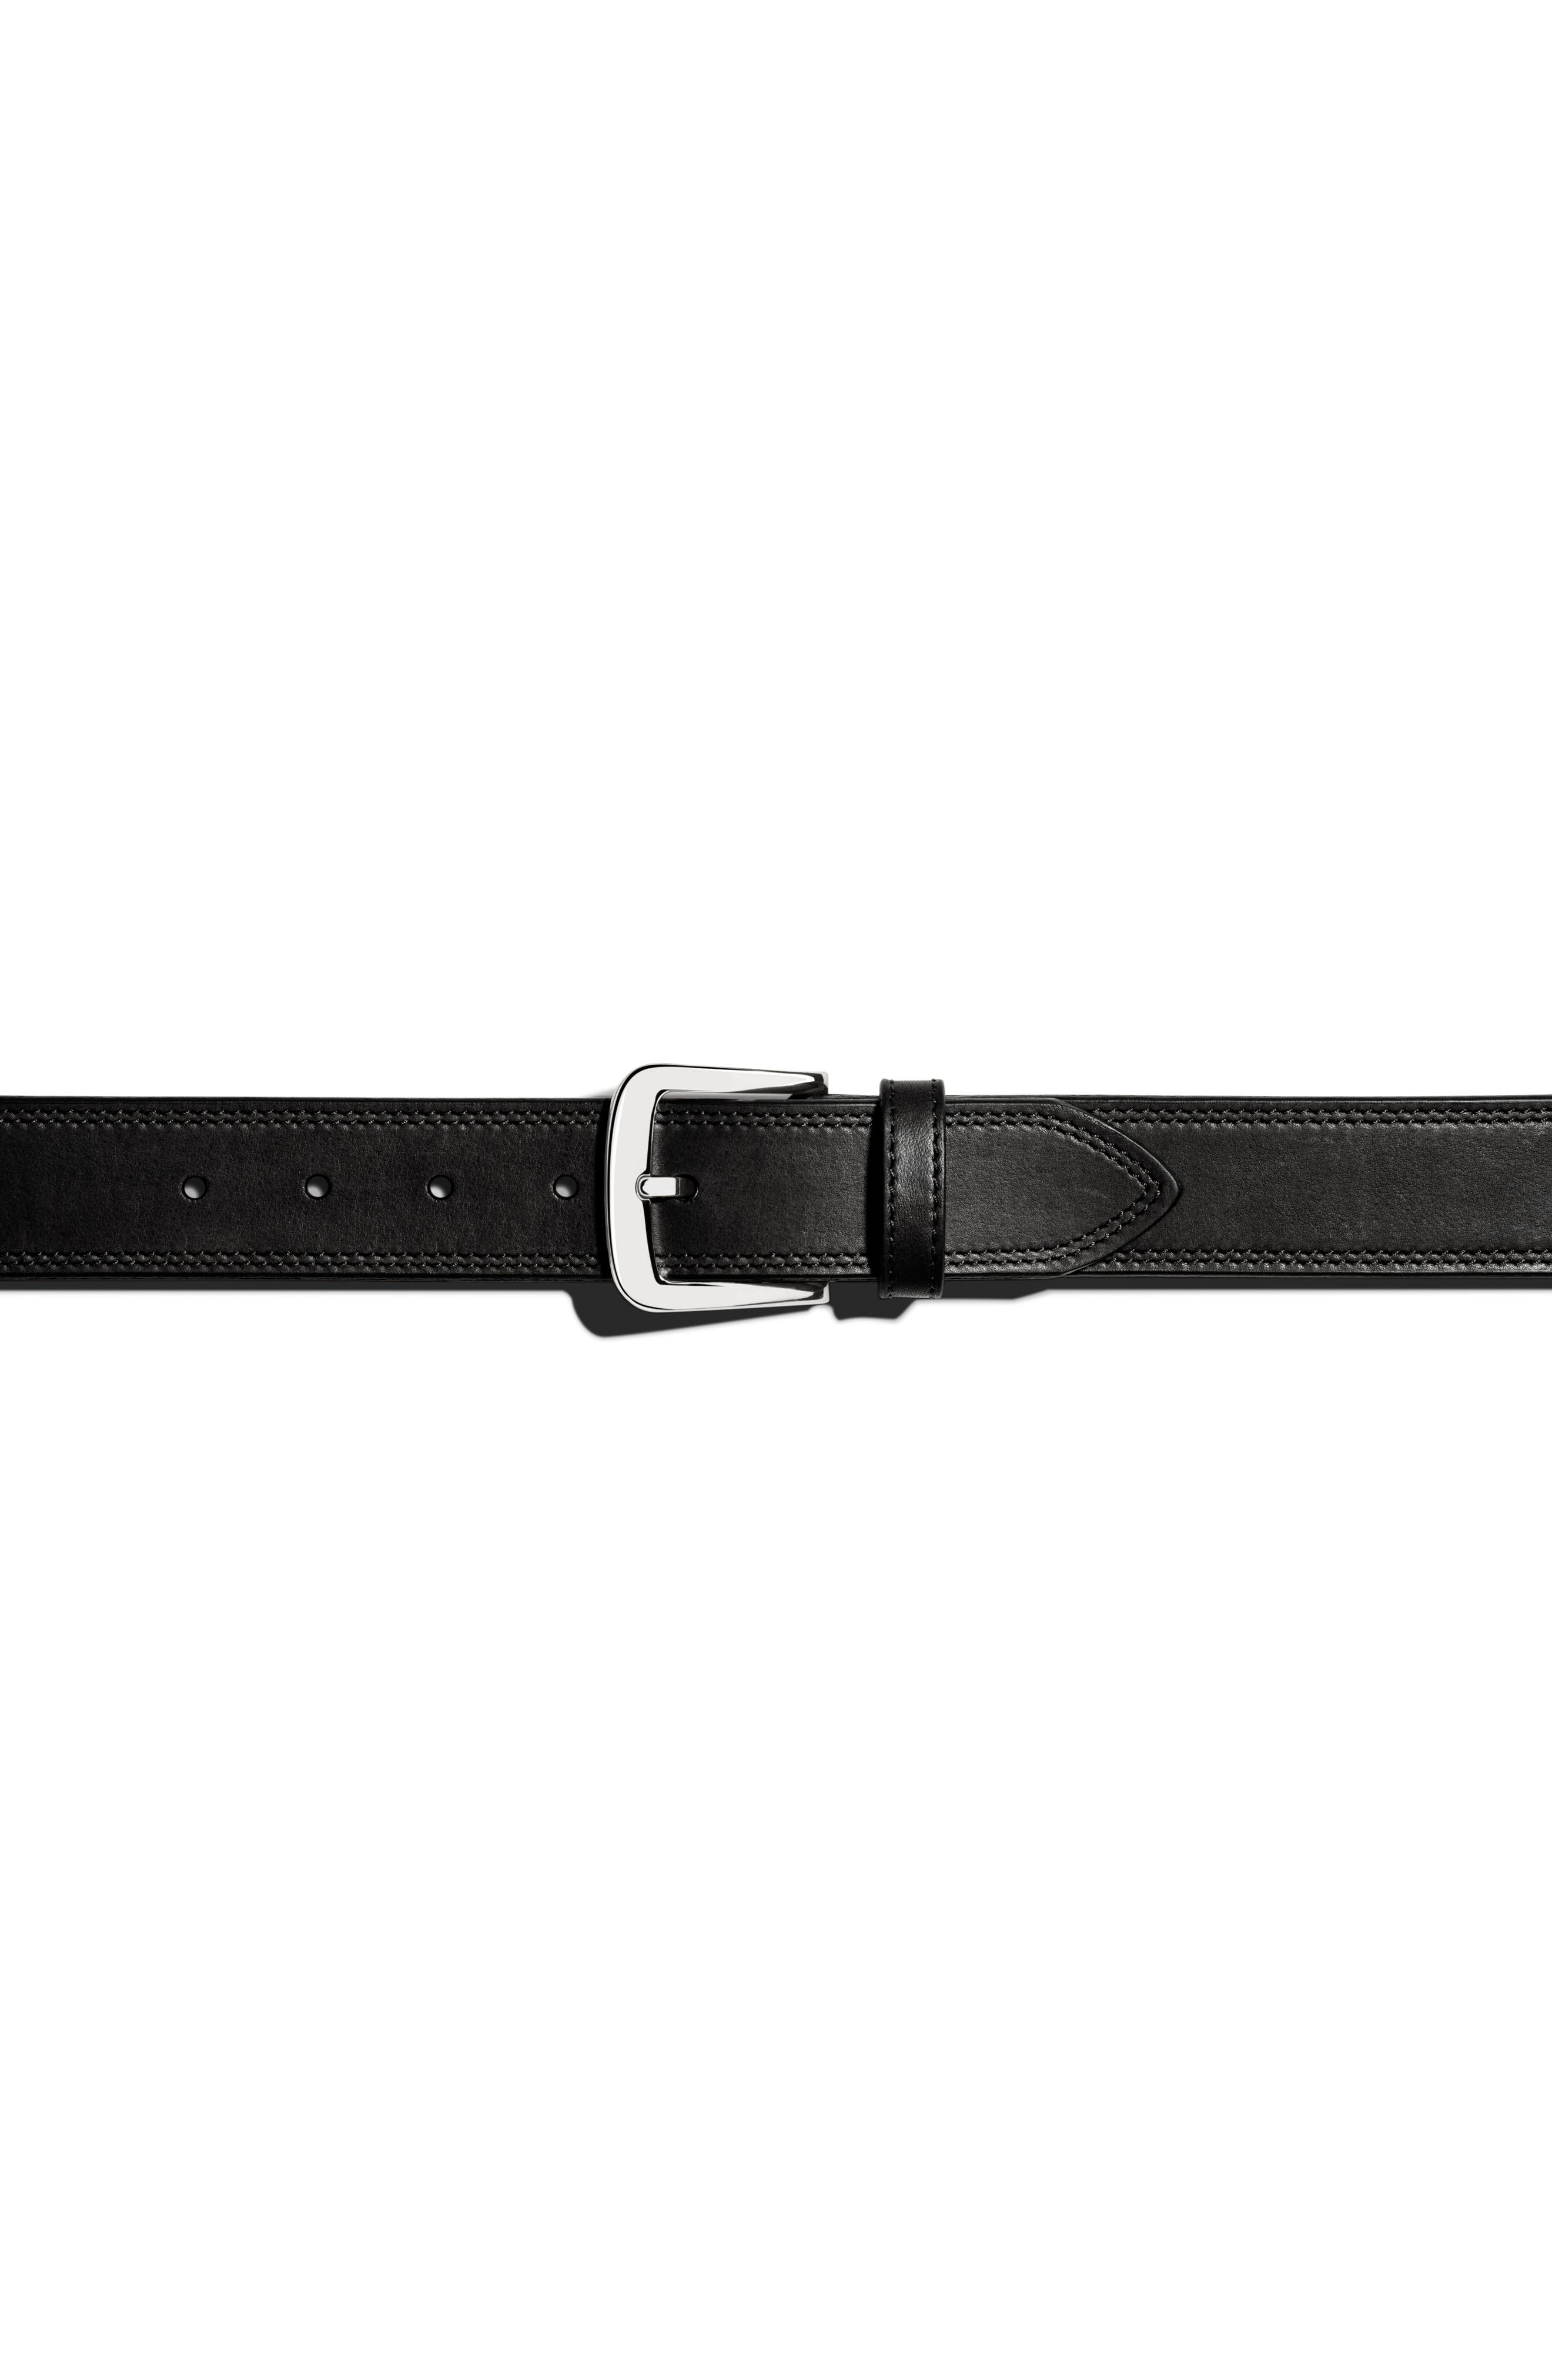 Double Stitch Leather Belt,                             Alternate thumbnail 4, color,                             Black